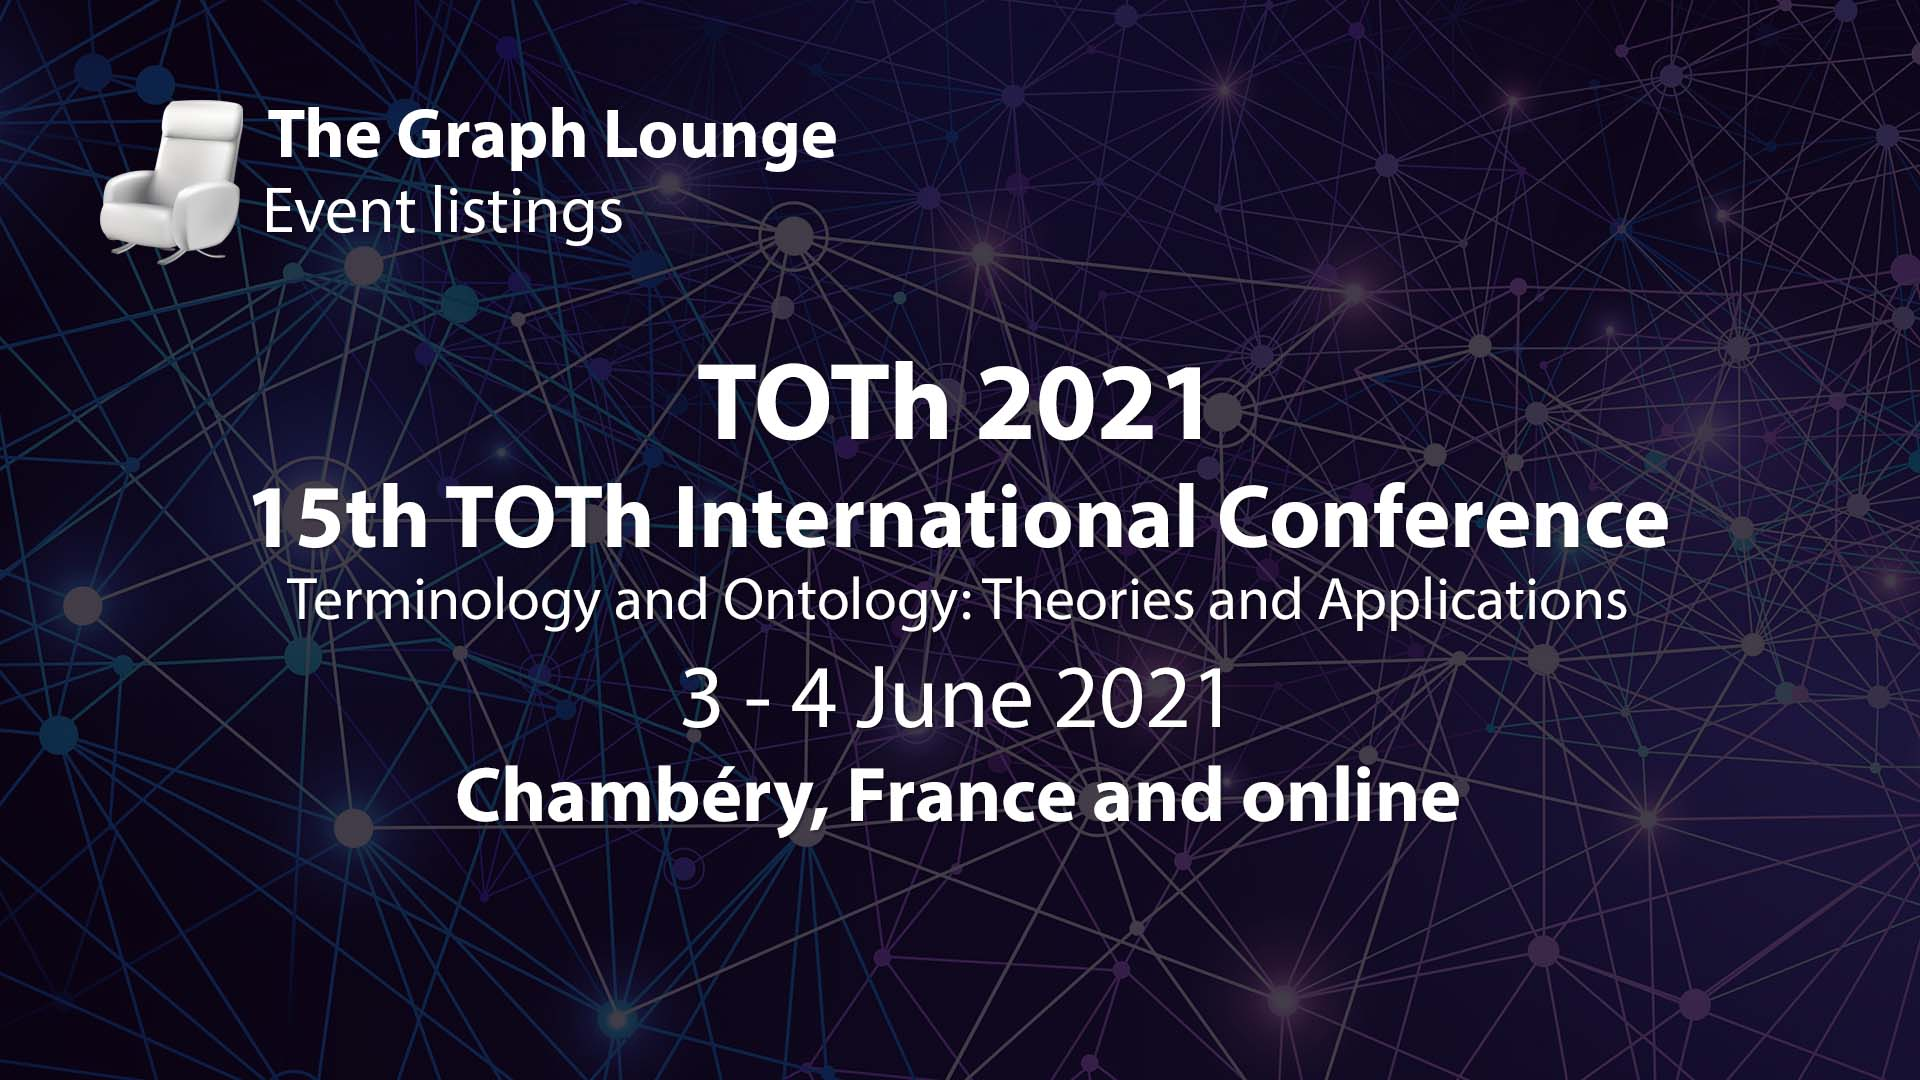 TOTh 2021 (Terminology and Ontology: Theories and Applications)